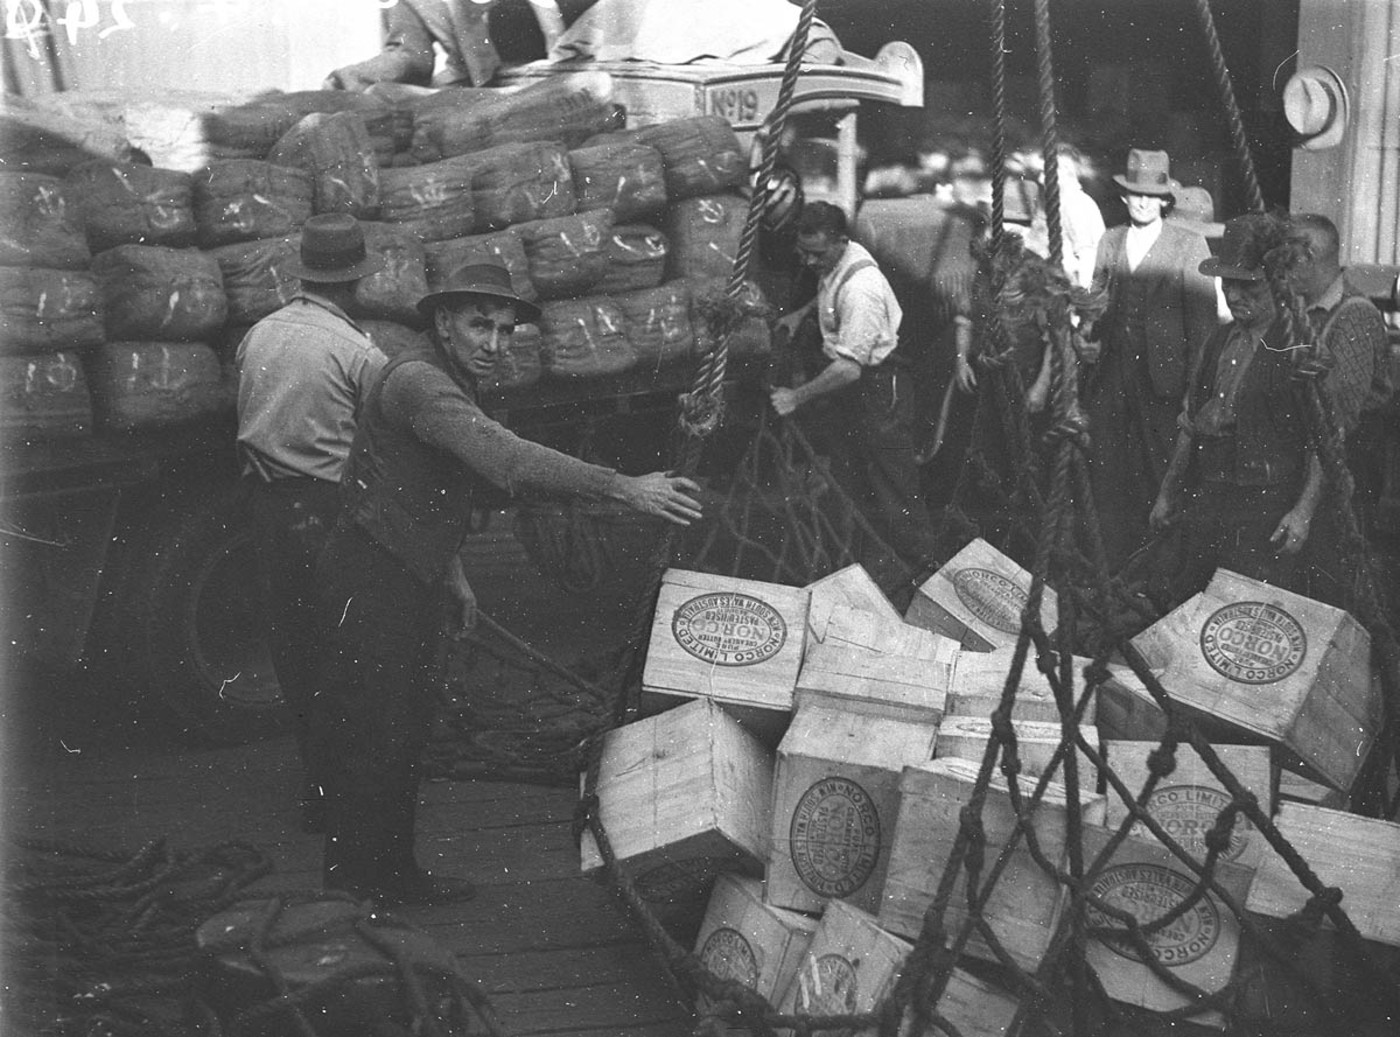 Loading a ship, Sydney Harbour 12 July 1934